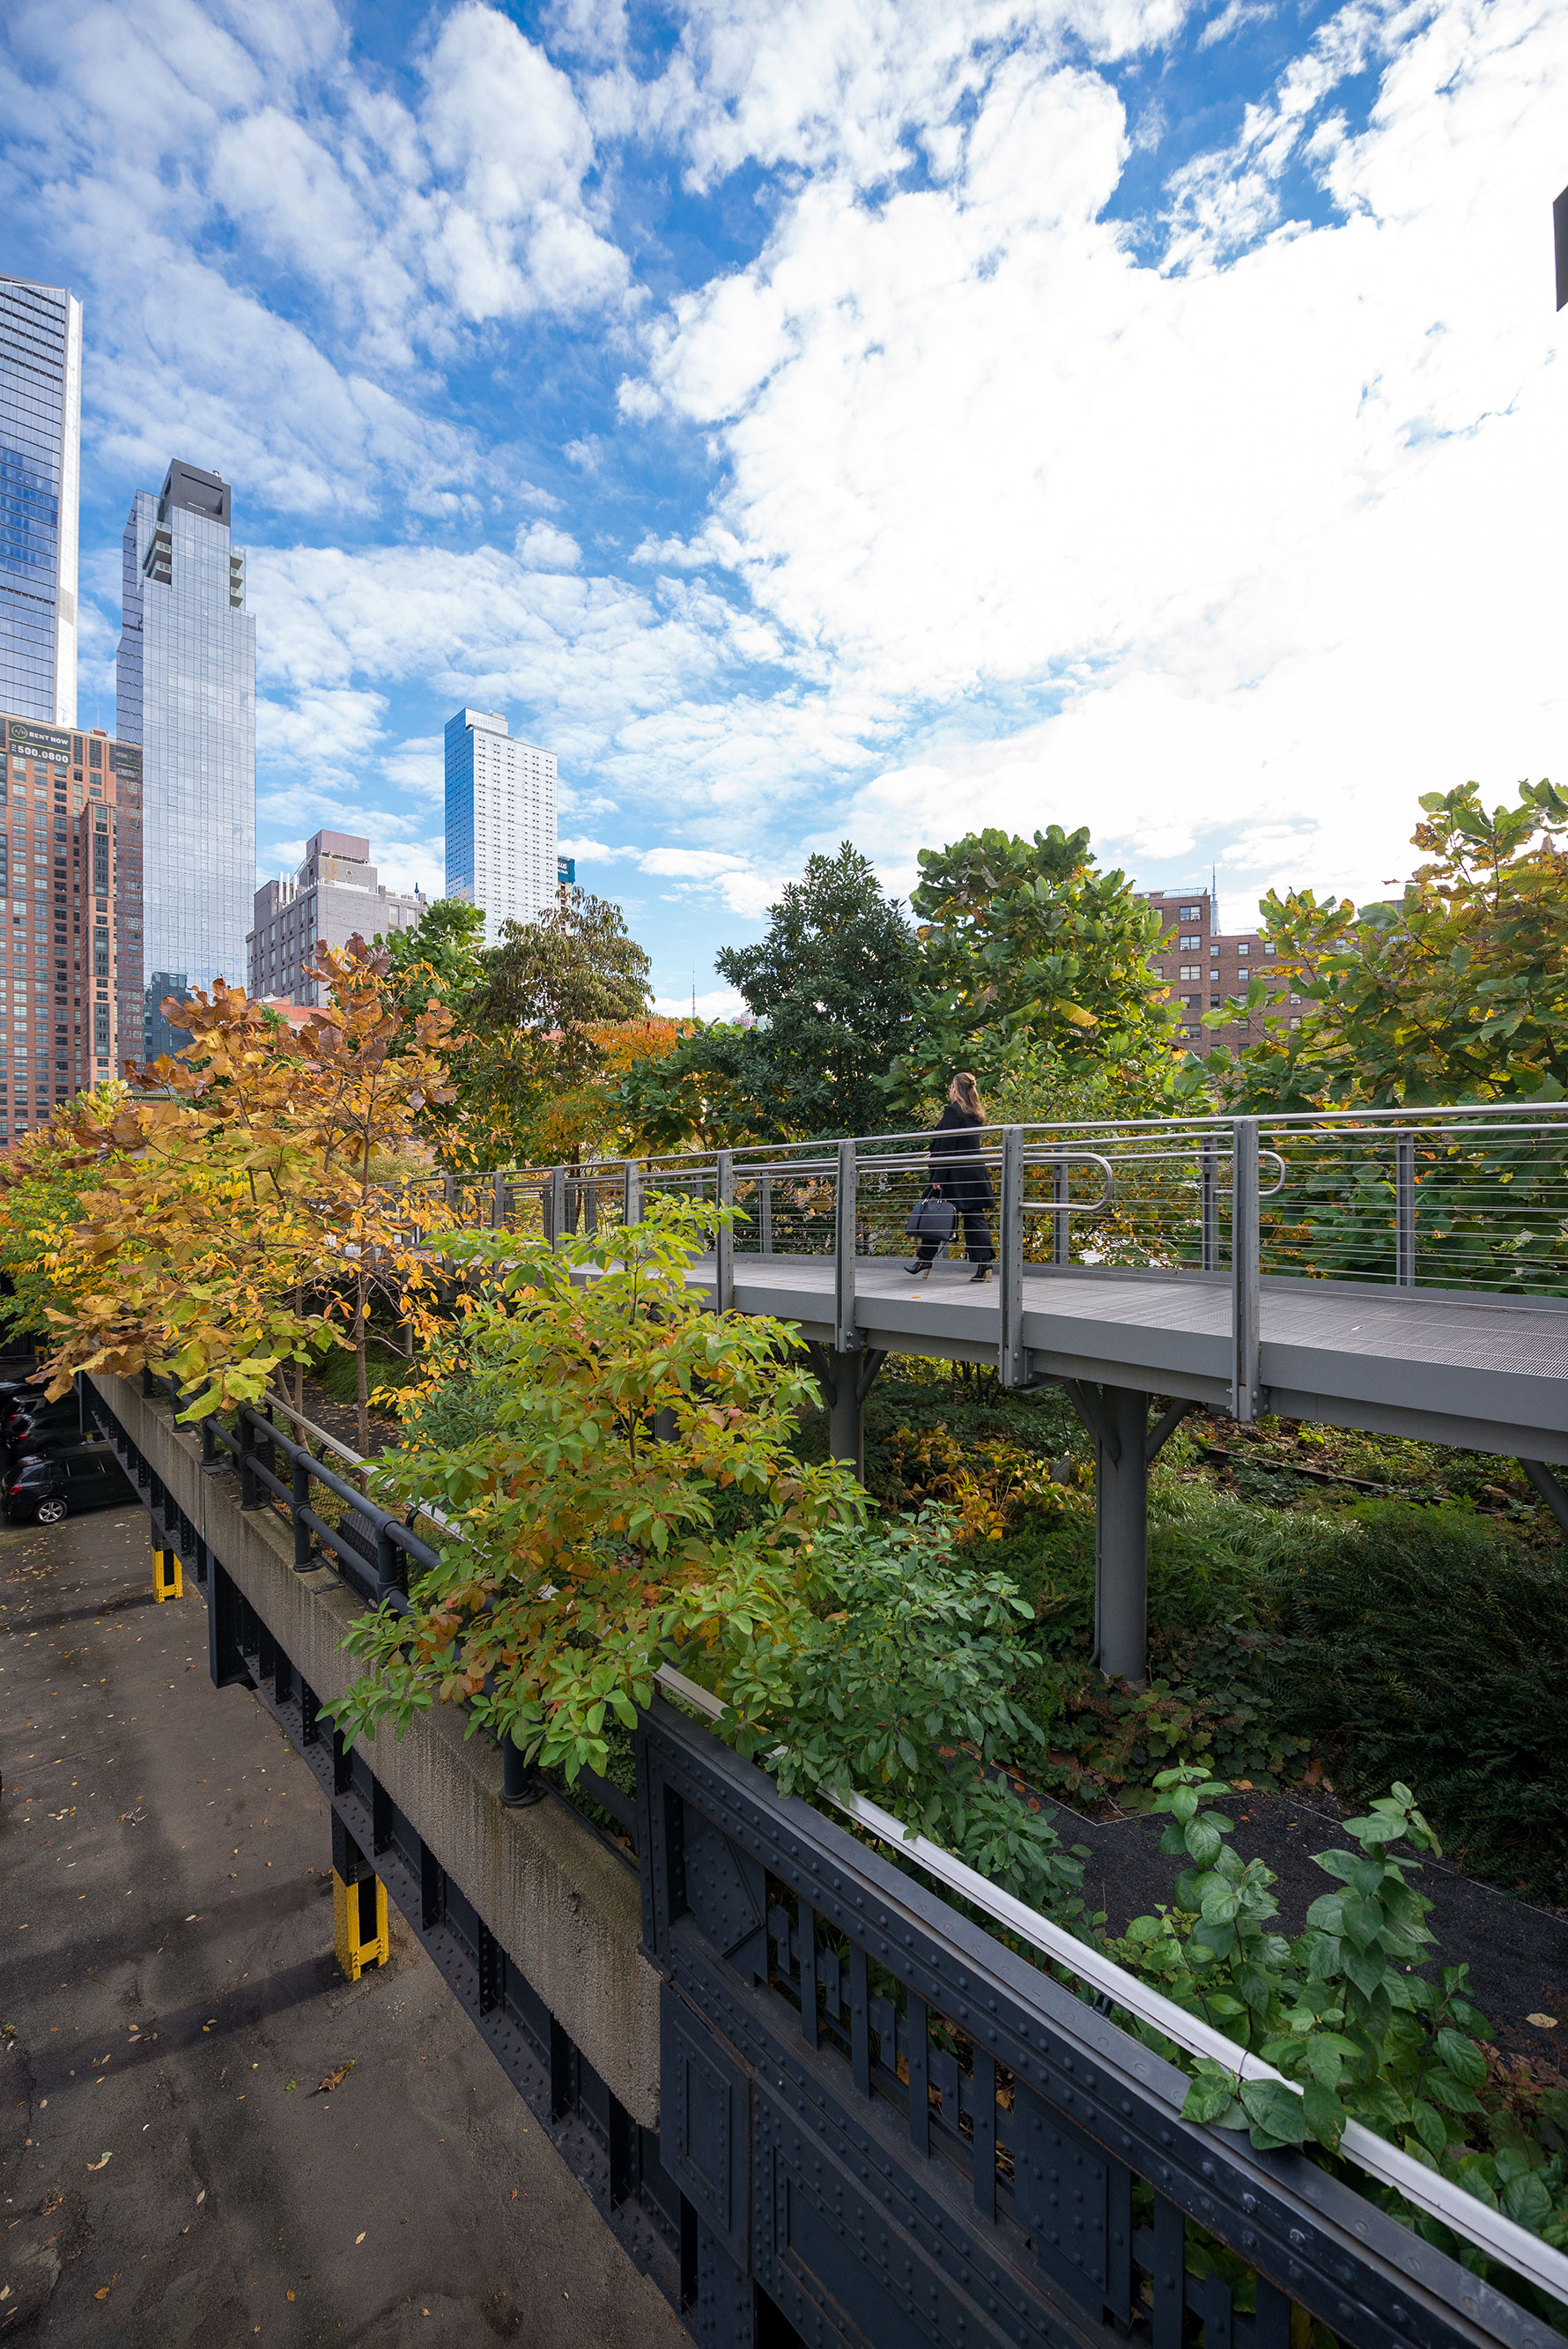 Leaves changing to orange and yellow on the High Line